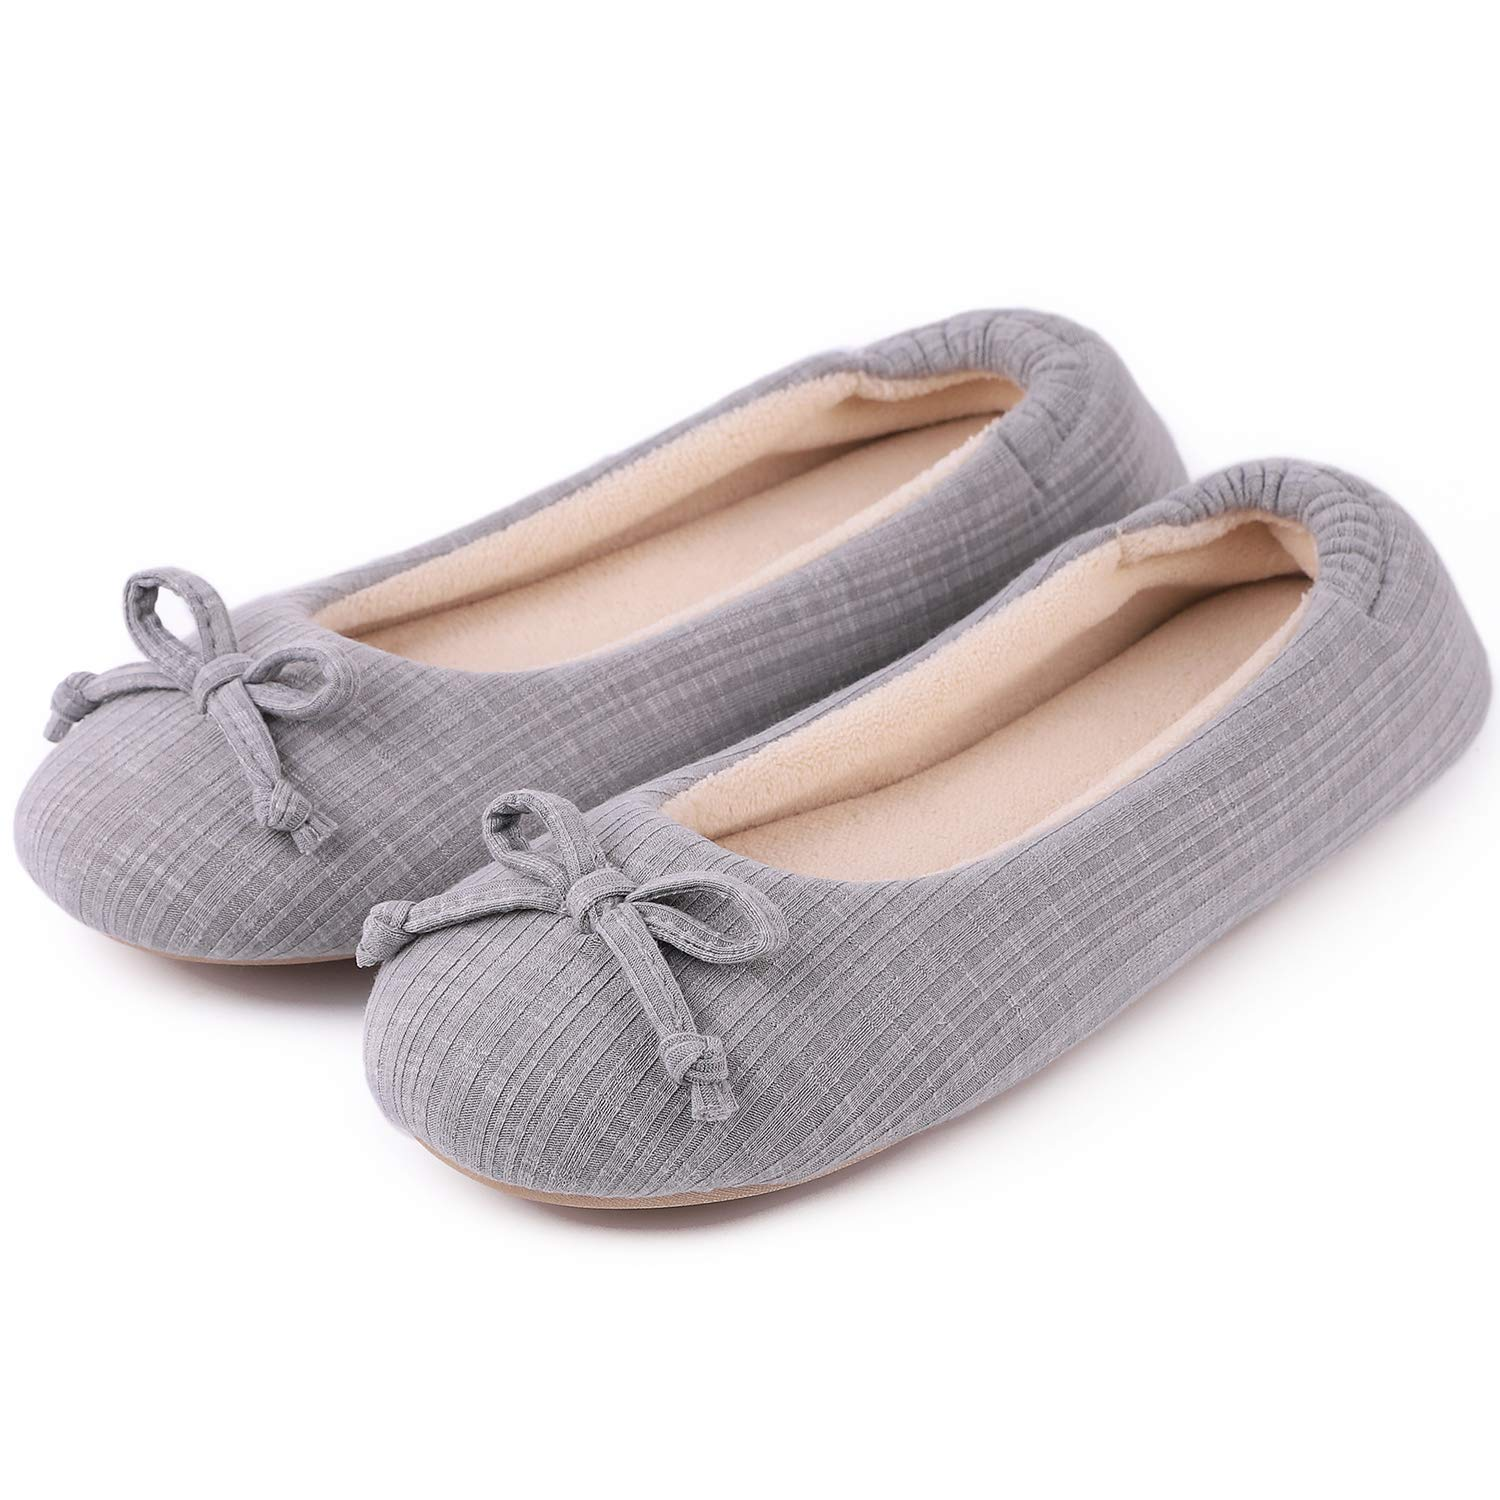 Cozy Niche Women's Comfort Stripe Knitted Ballerina Style Shoes, Memory Foam House Slippers with Coral Velvet Lining (5-6 B(M) US, Gray)